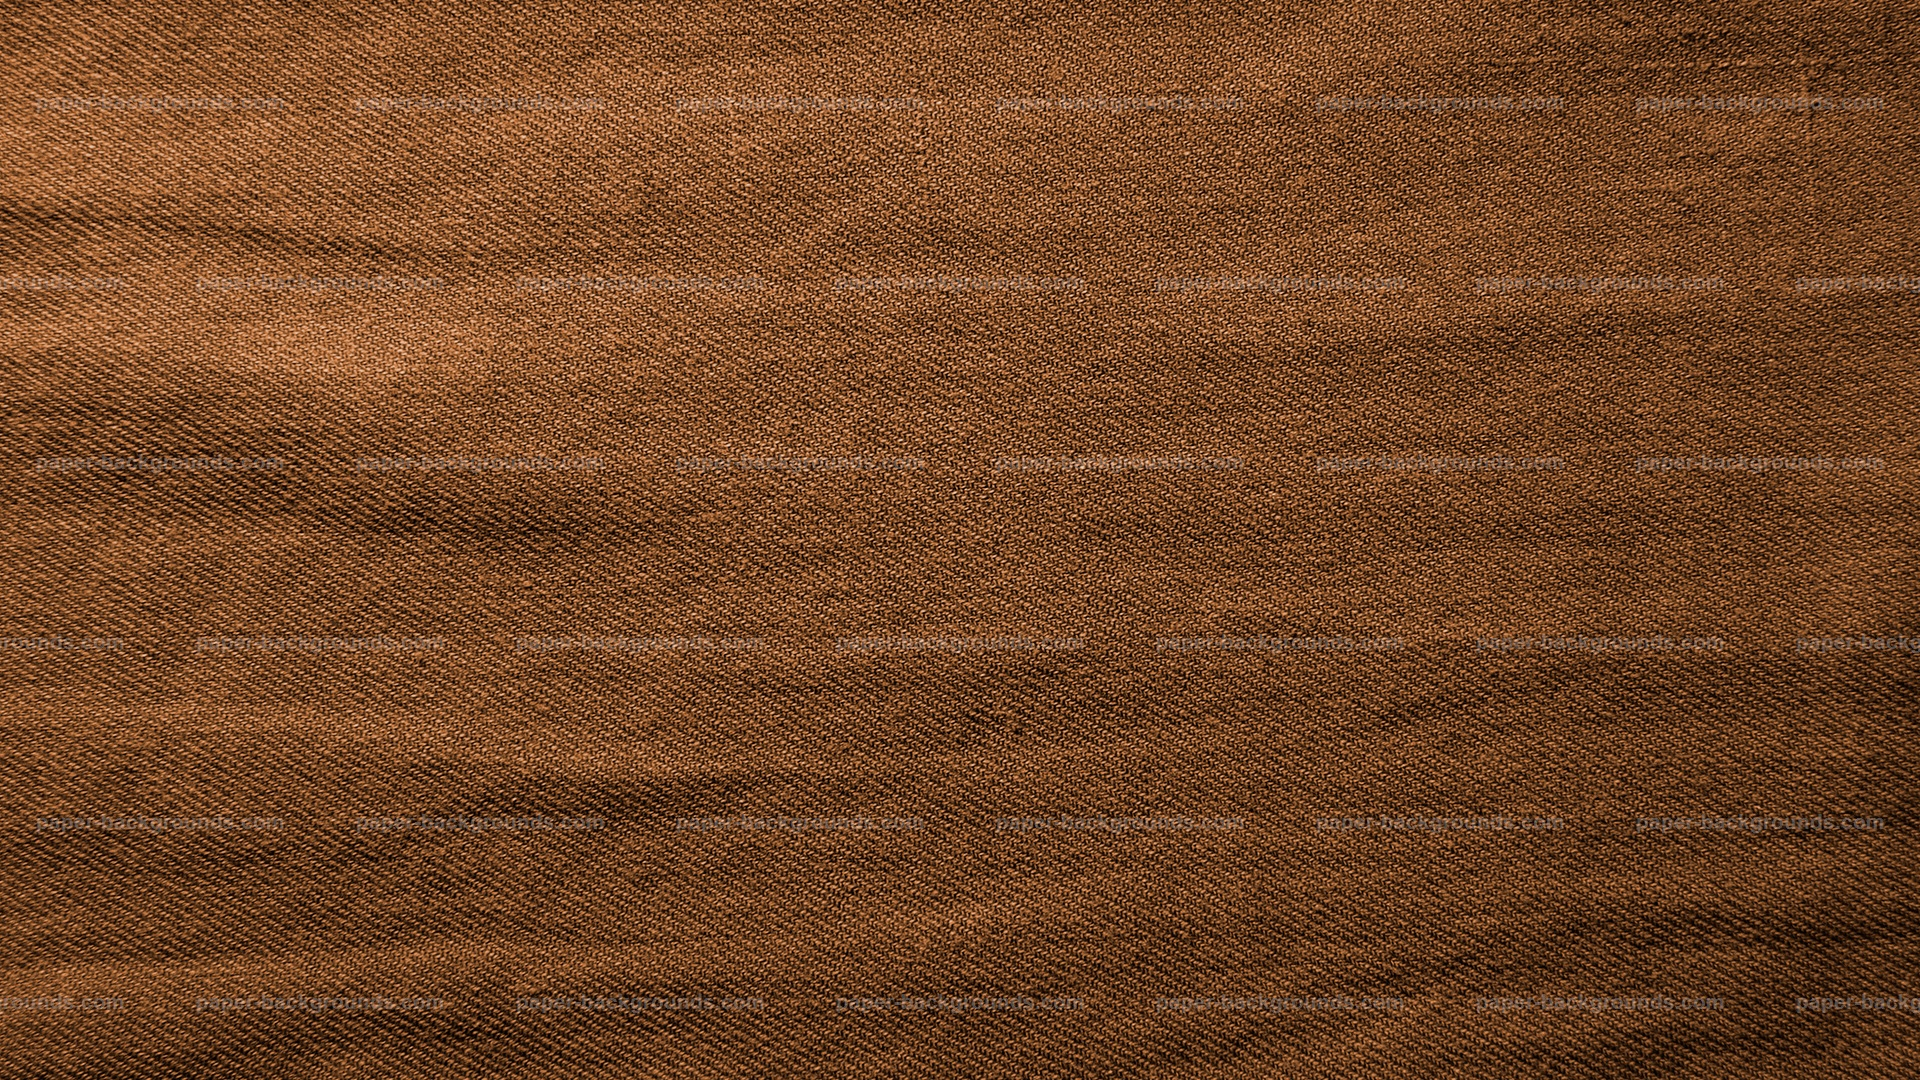 Wrinkled Brown Canvas Texture HD